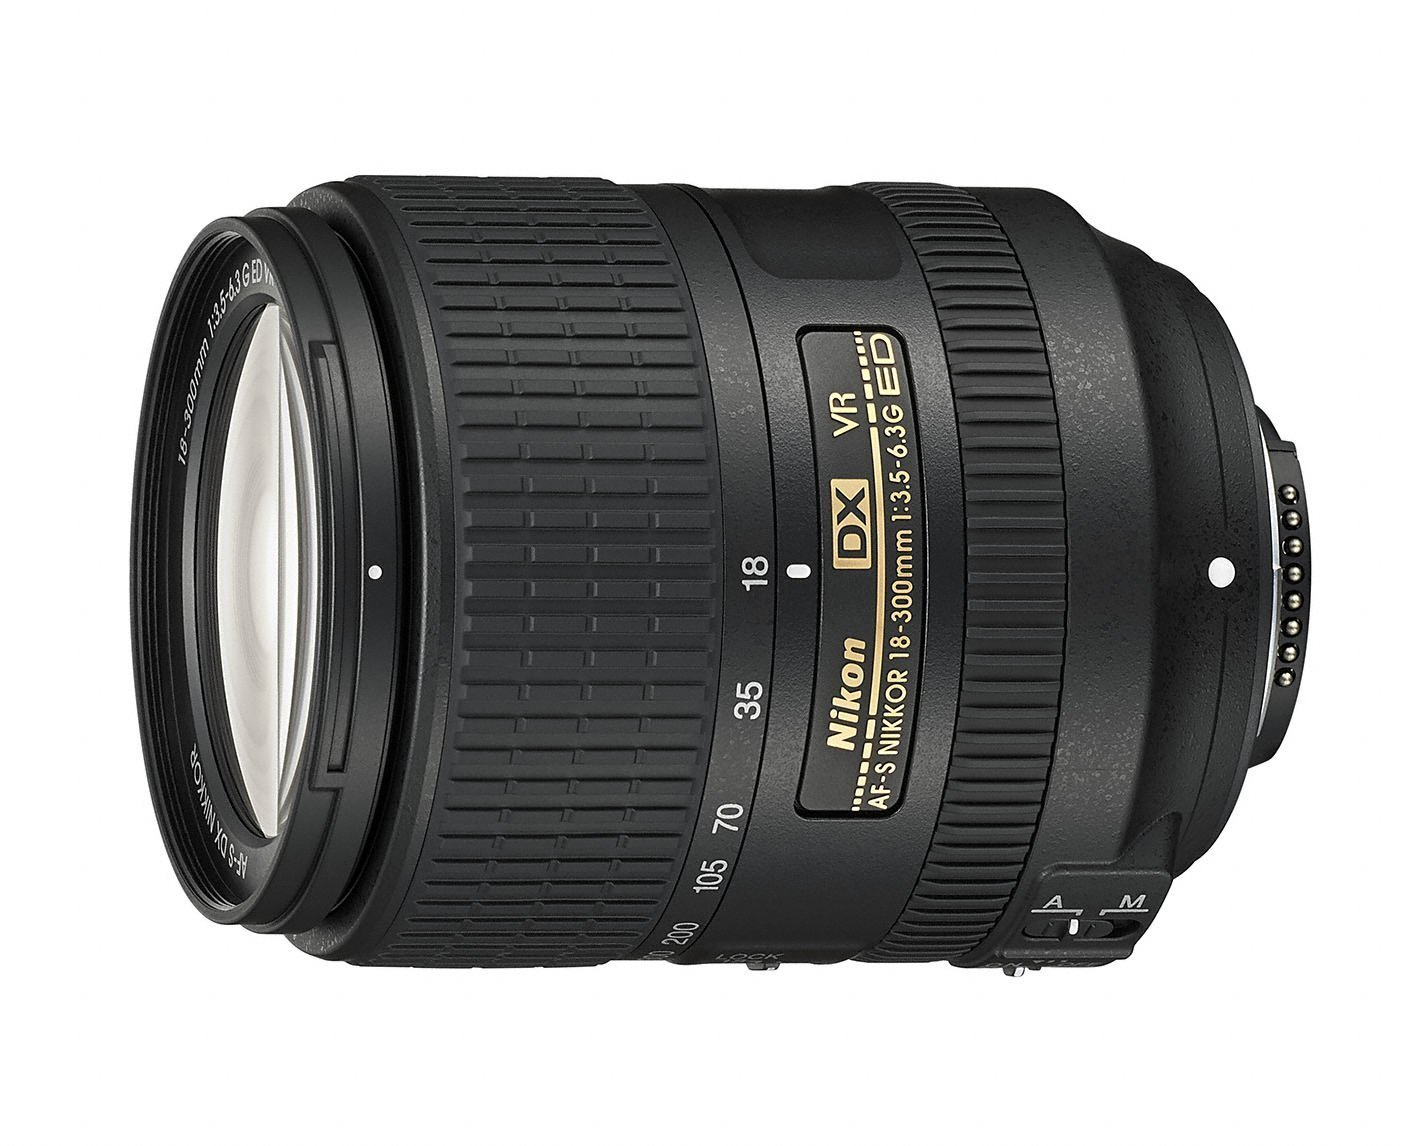 The lighter version of Nikon 18-300mm